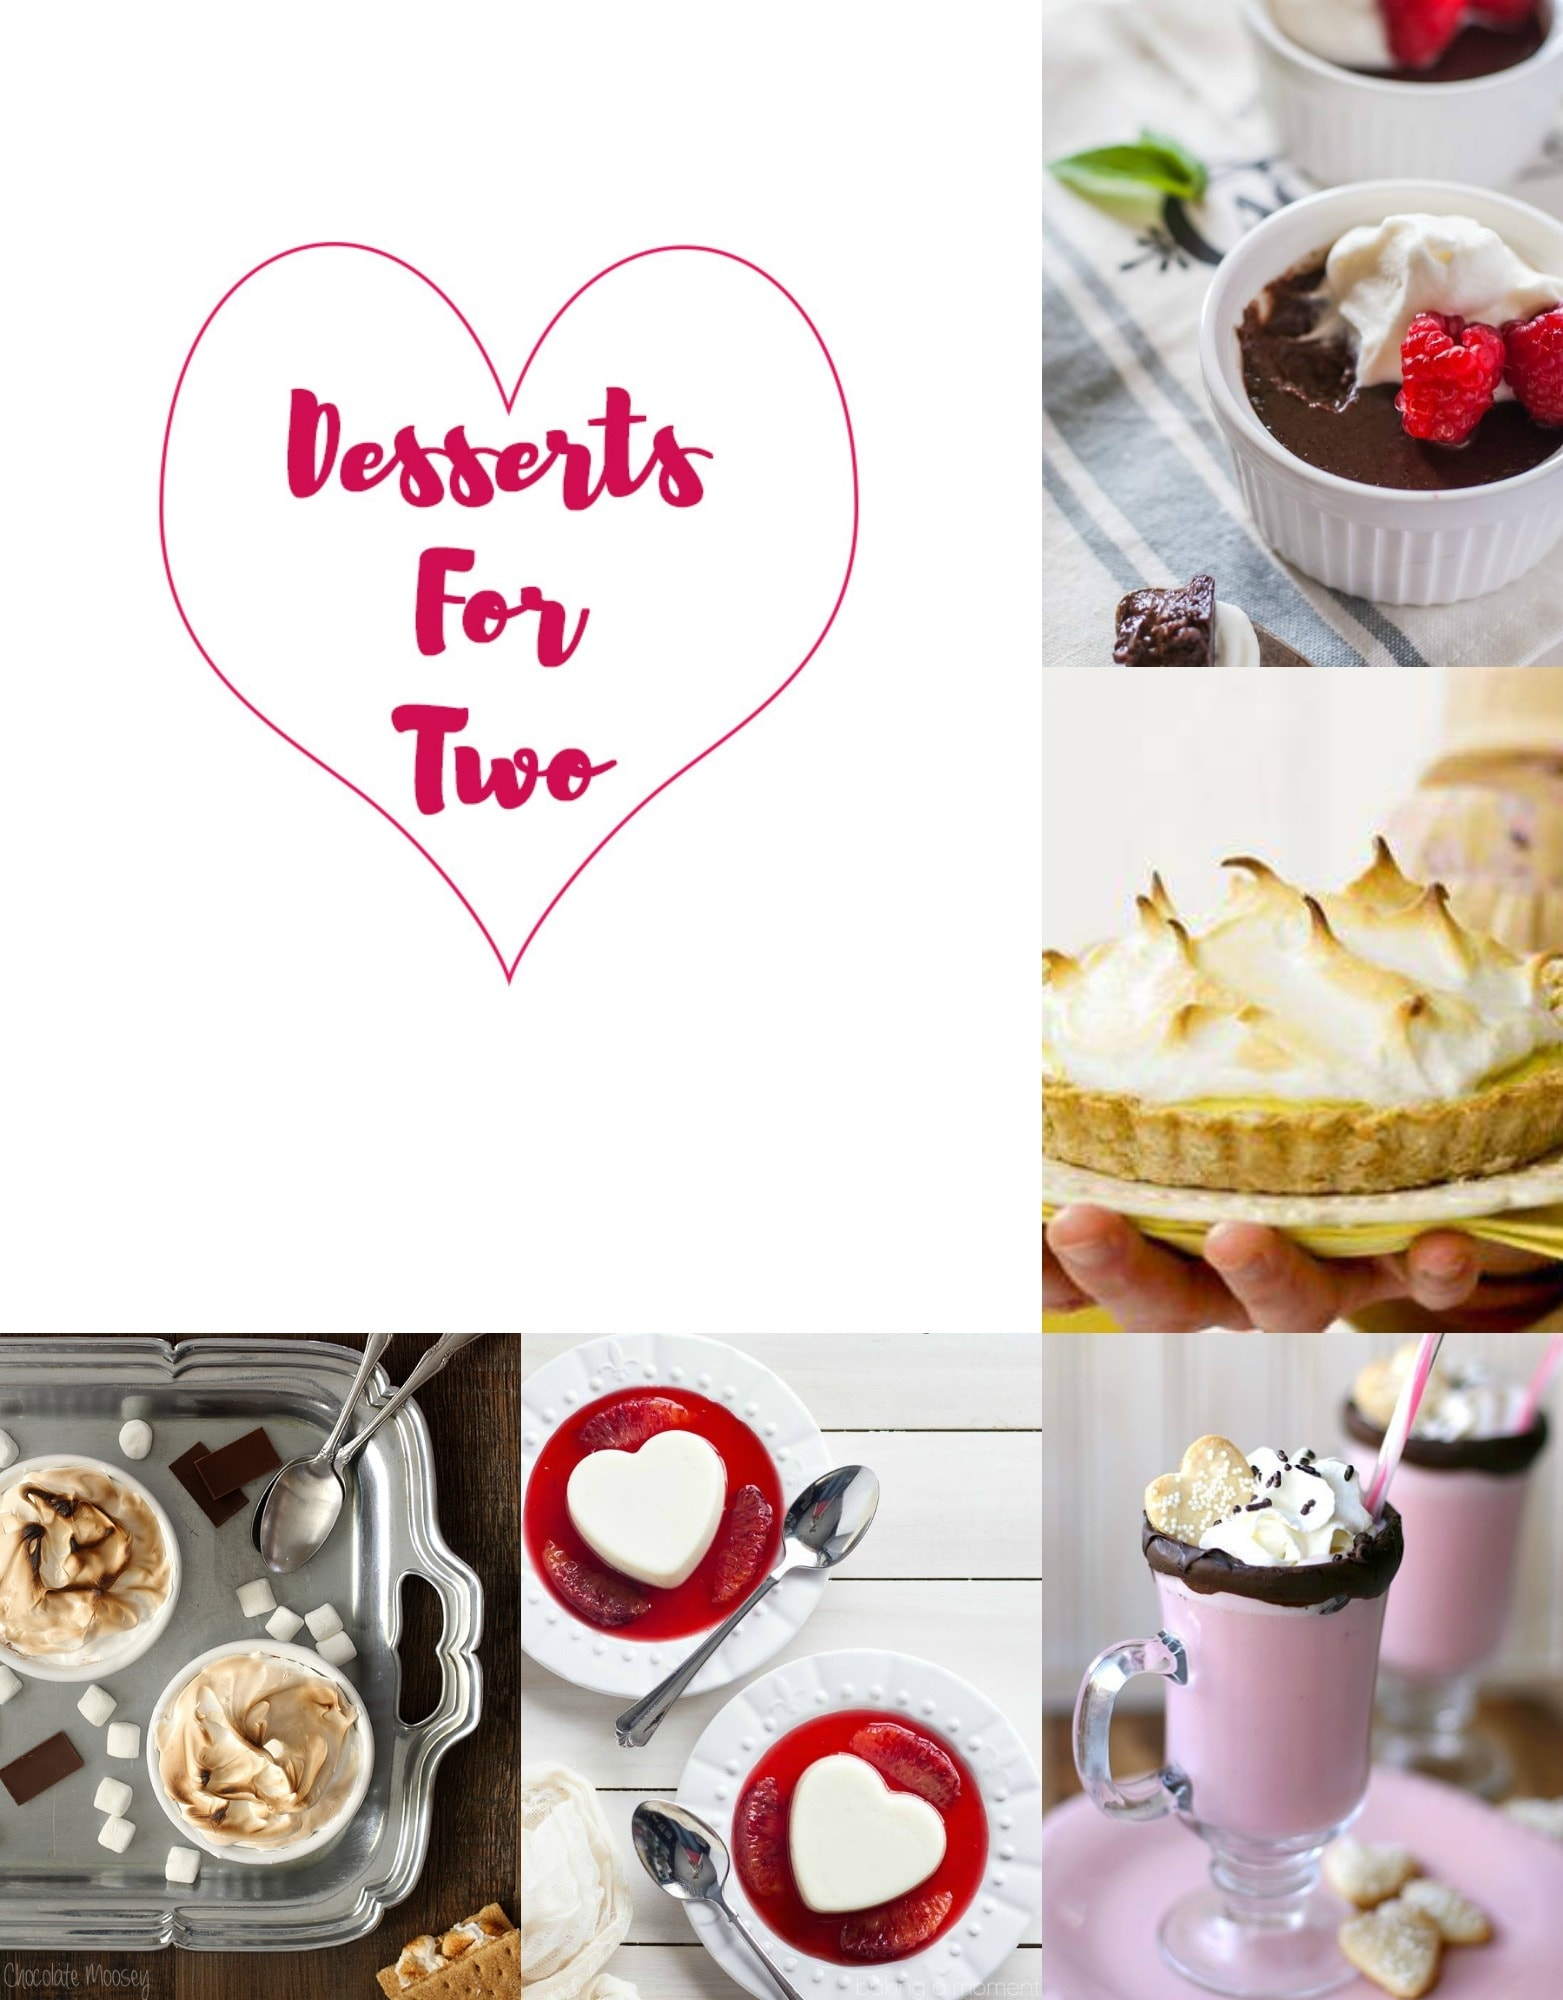 desserts for two collage